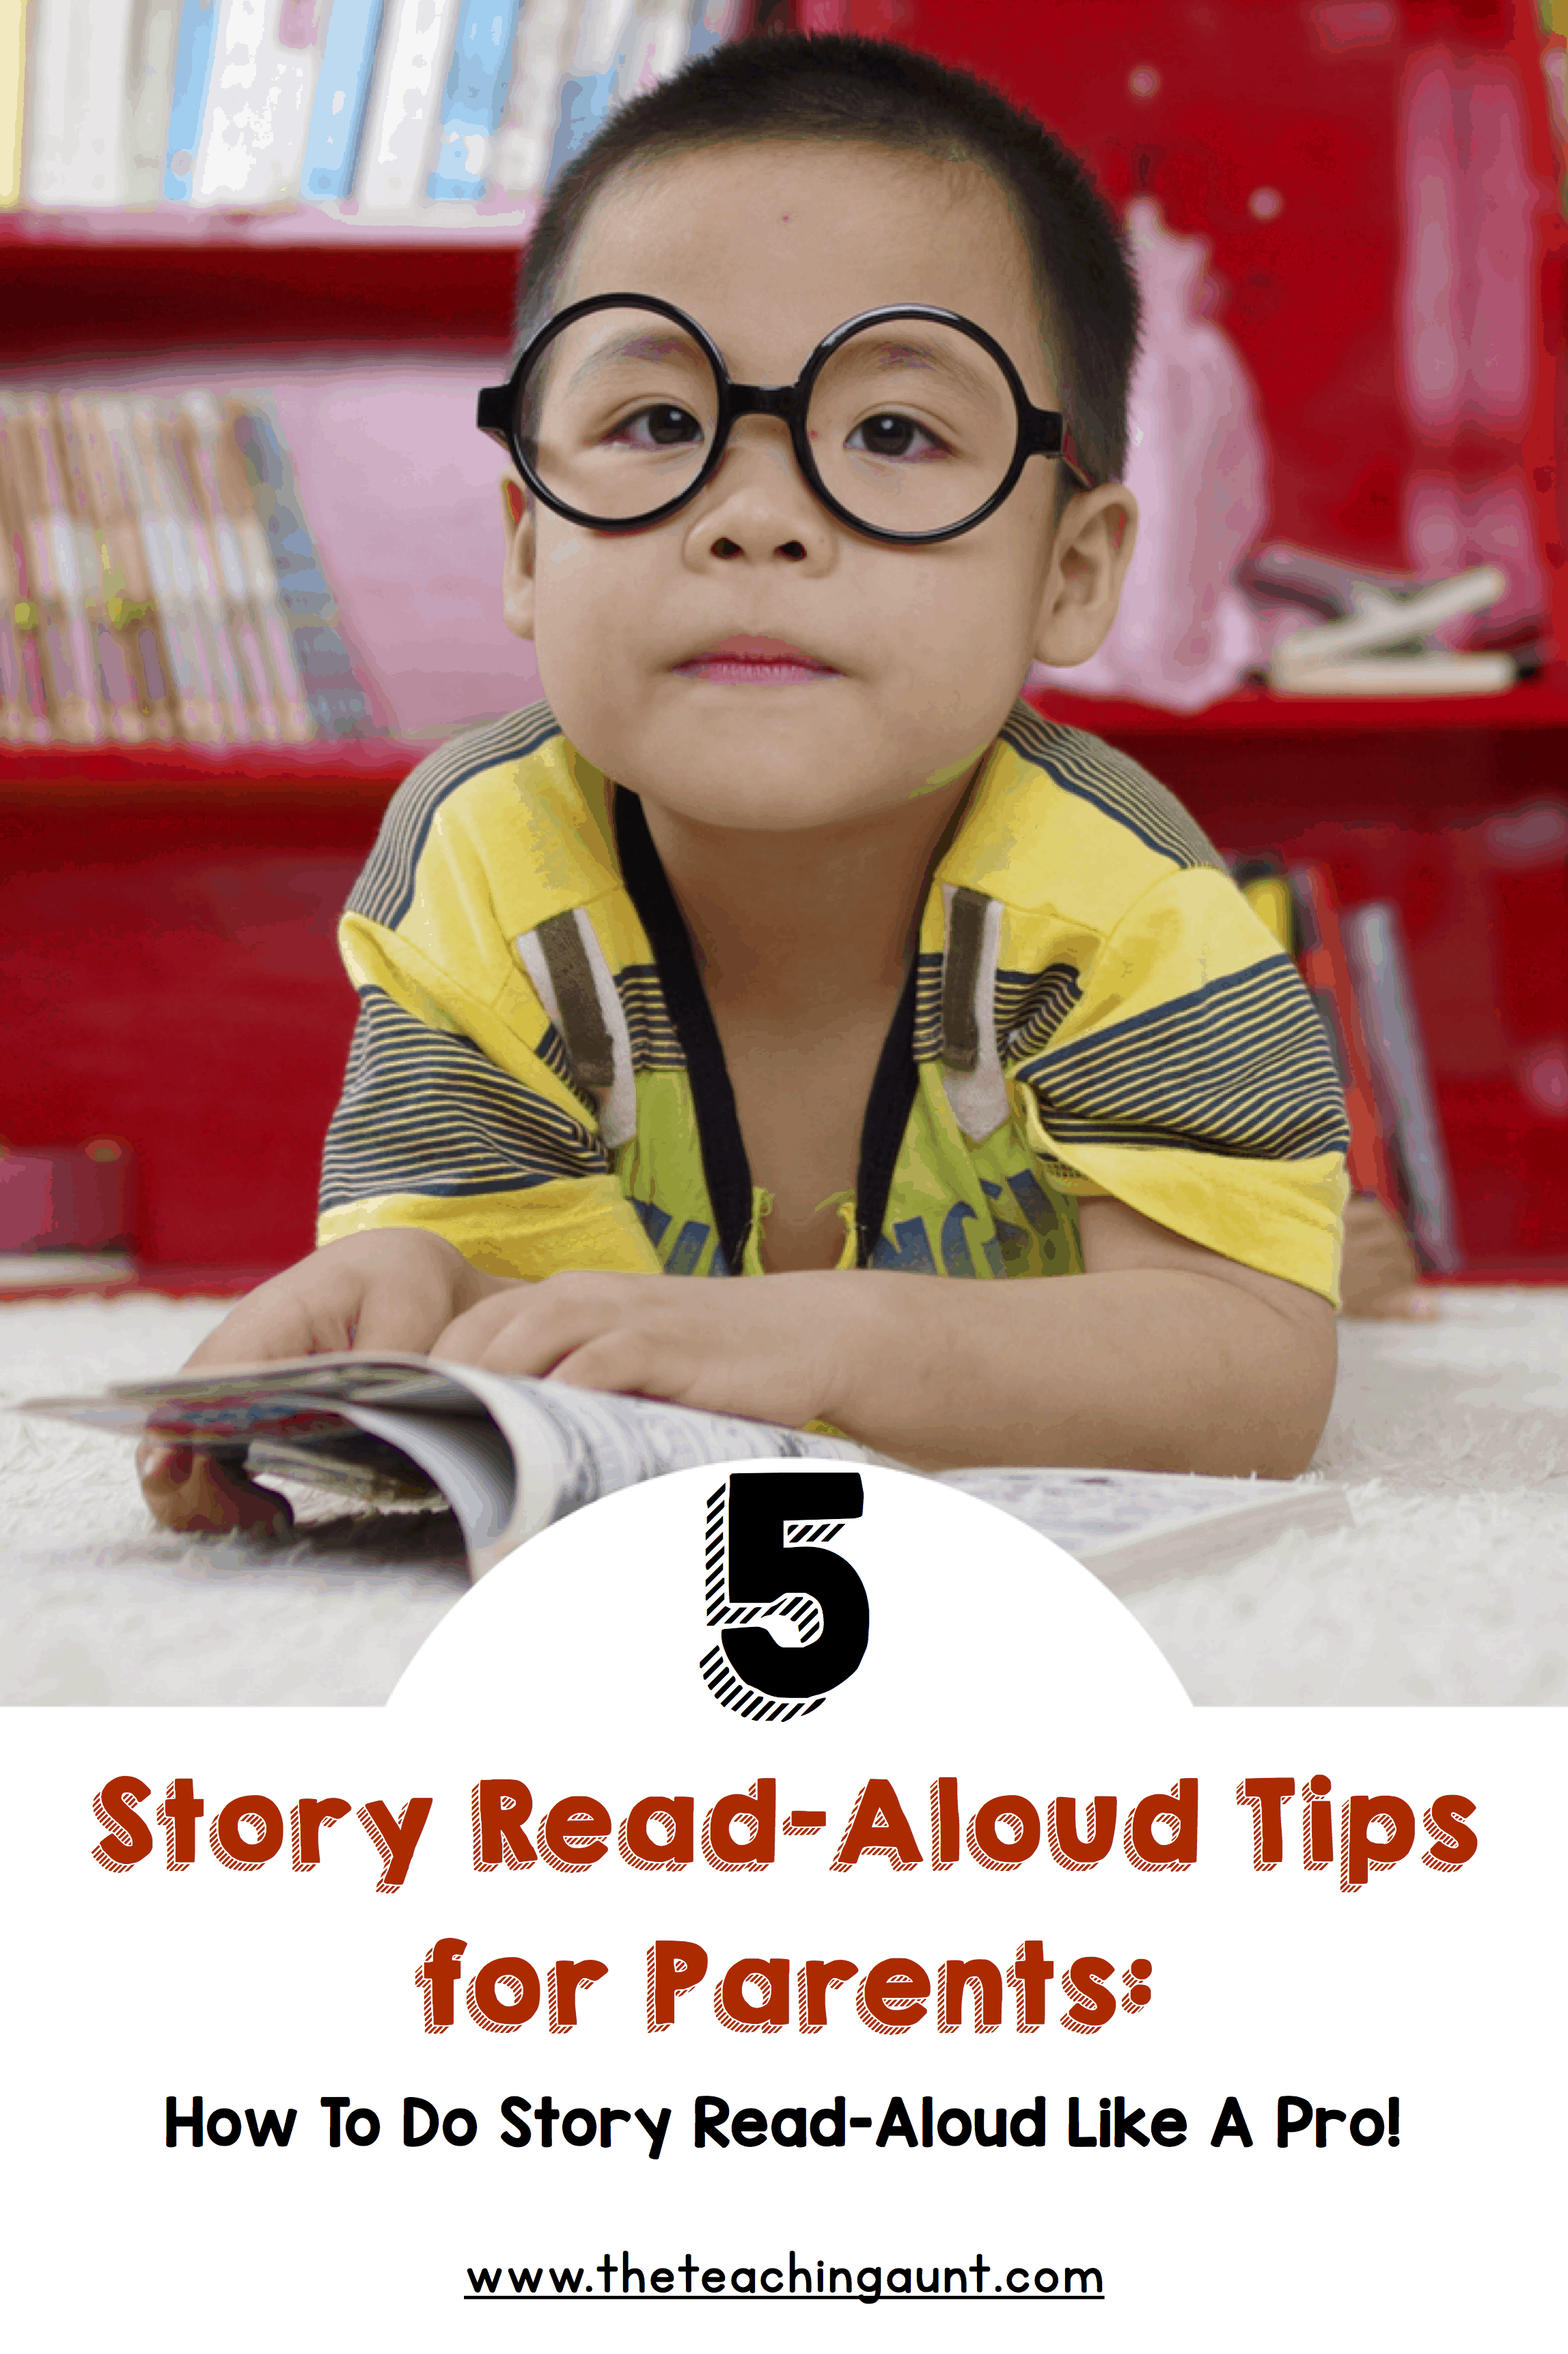 5 Story Read Aloud Tips for Parents: How To Do Story Read Aloud Like A Pro